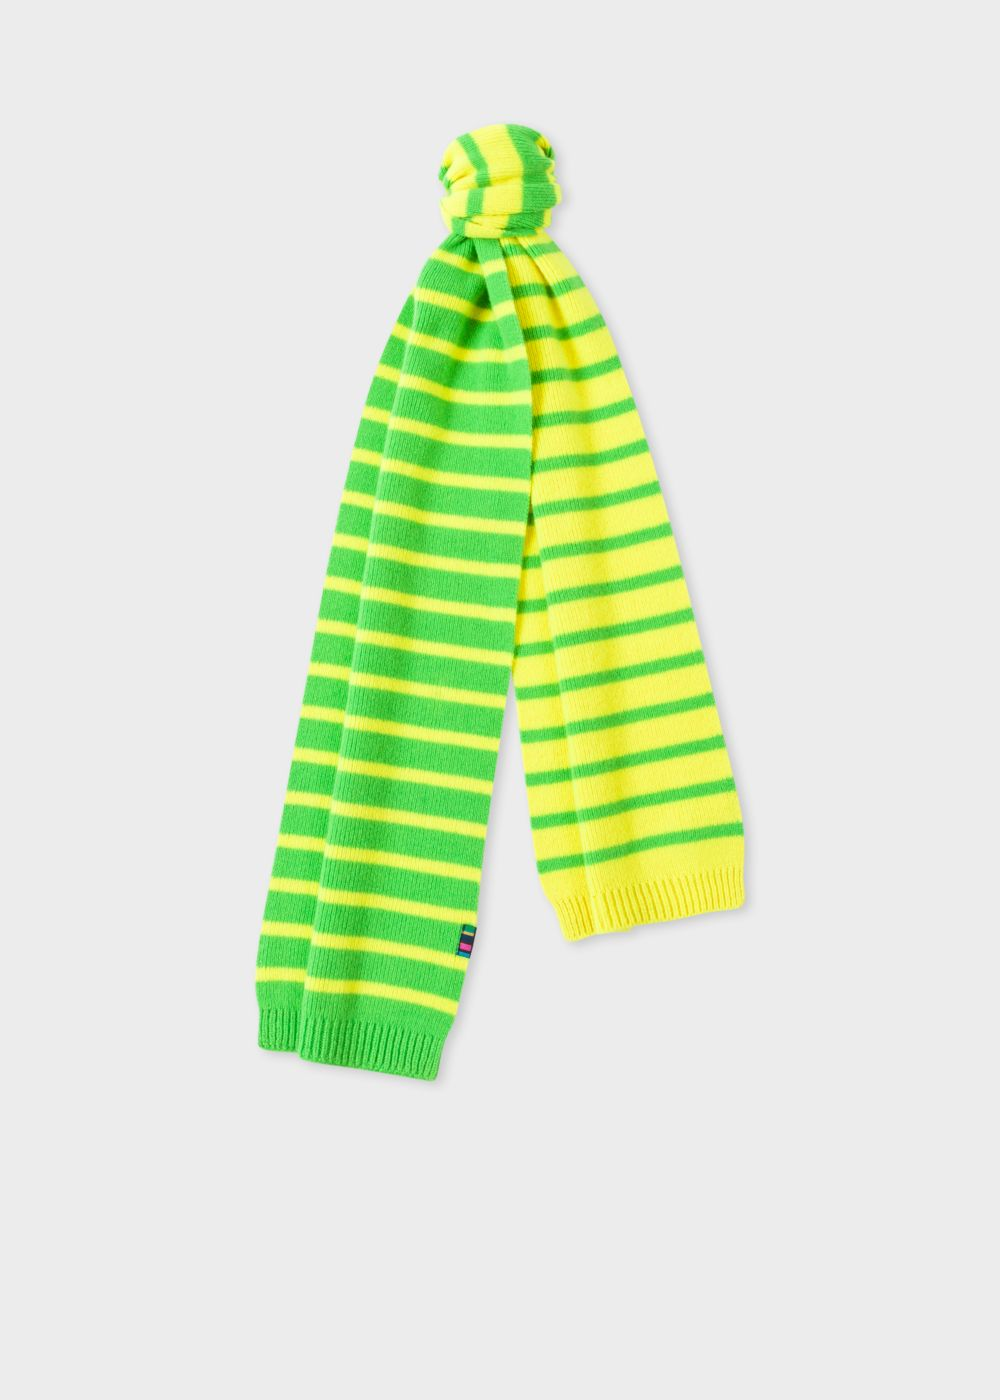 Paul Smith Men's Neon Yellow Stripe Lambswool Scarf